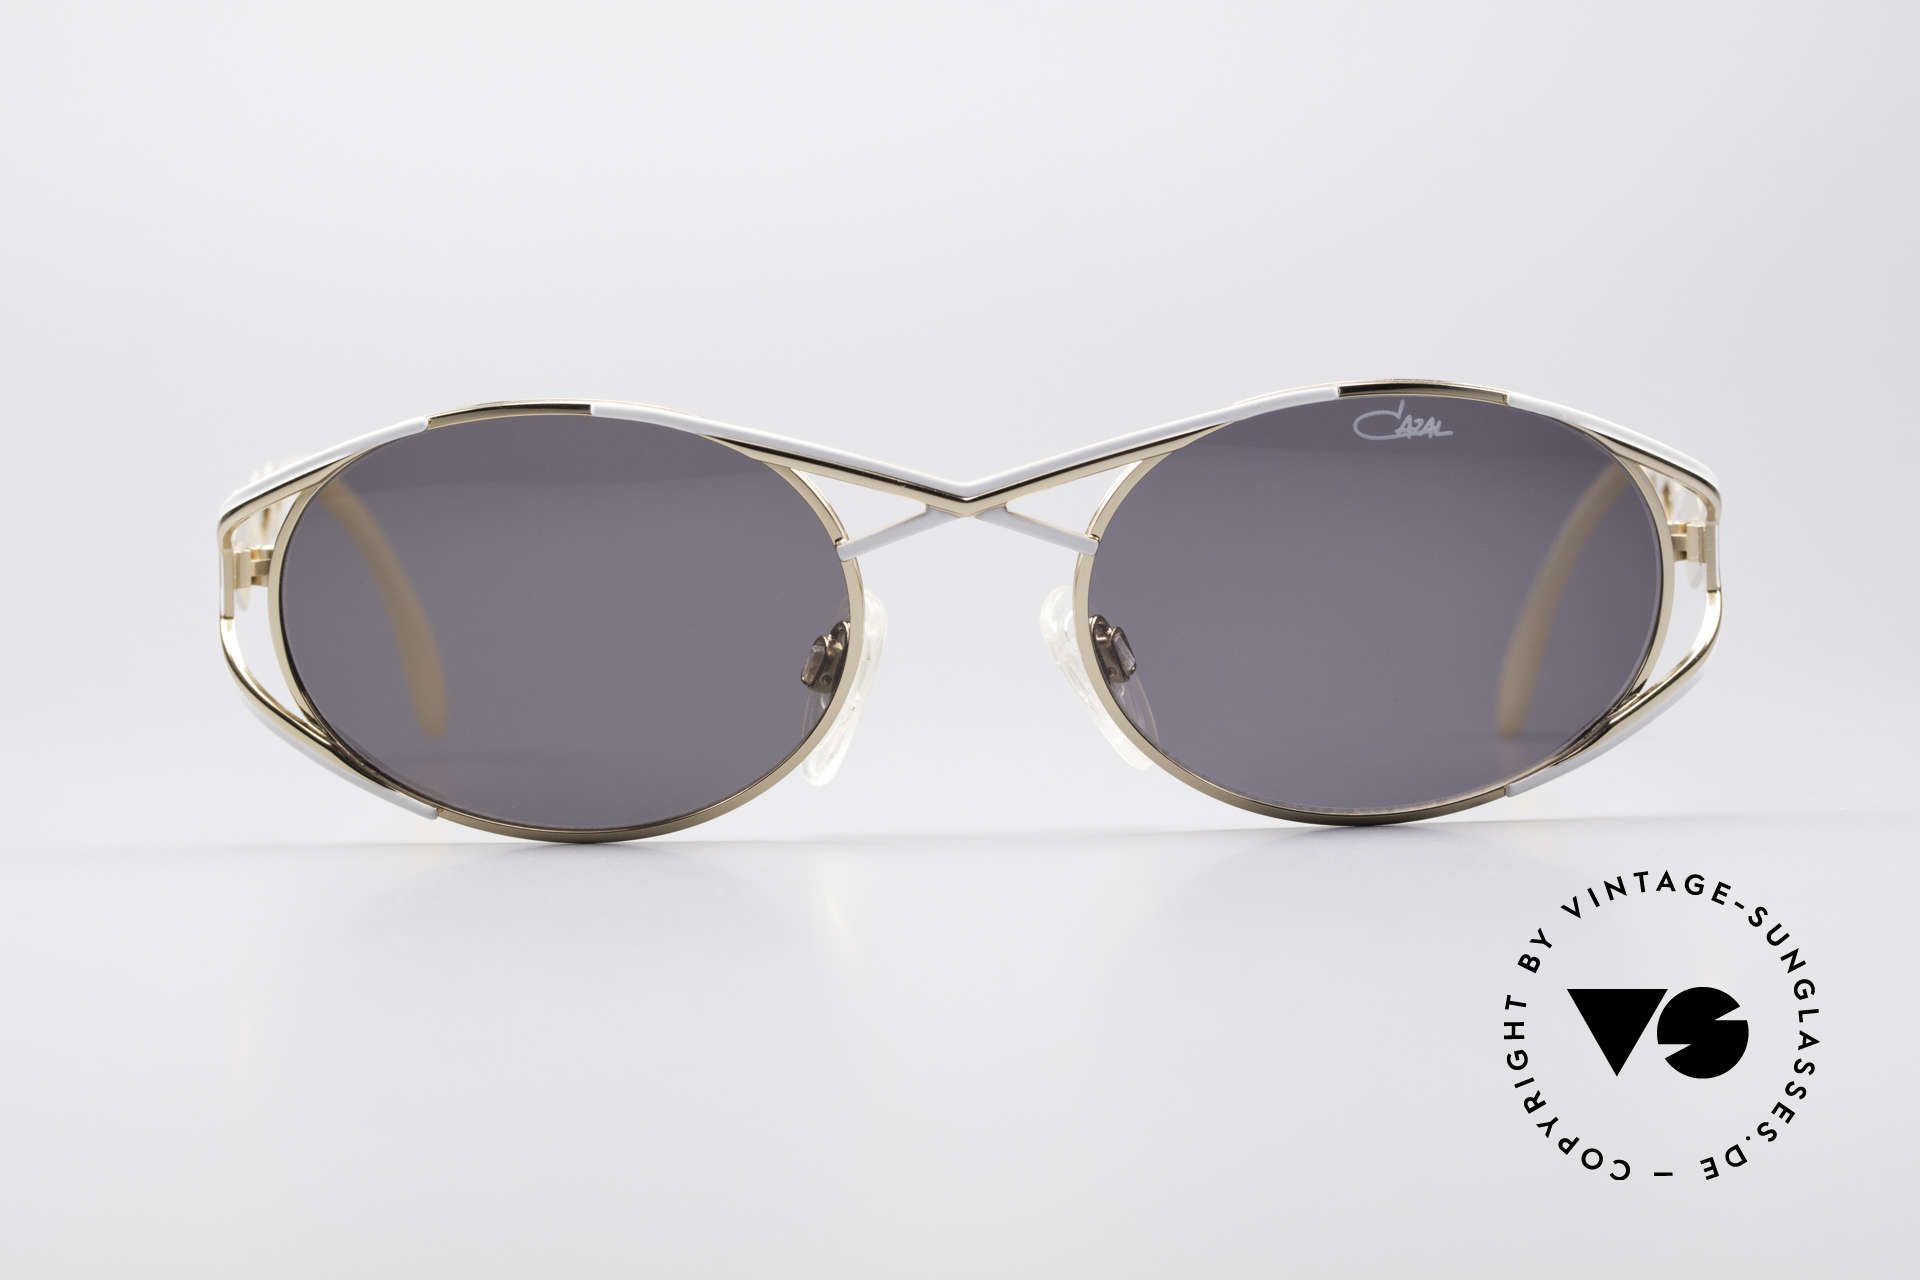 Cazal 977 90's Designer Shades Women, very elegant frame paintwork in gold-white coloring, Made for Women